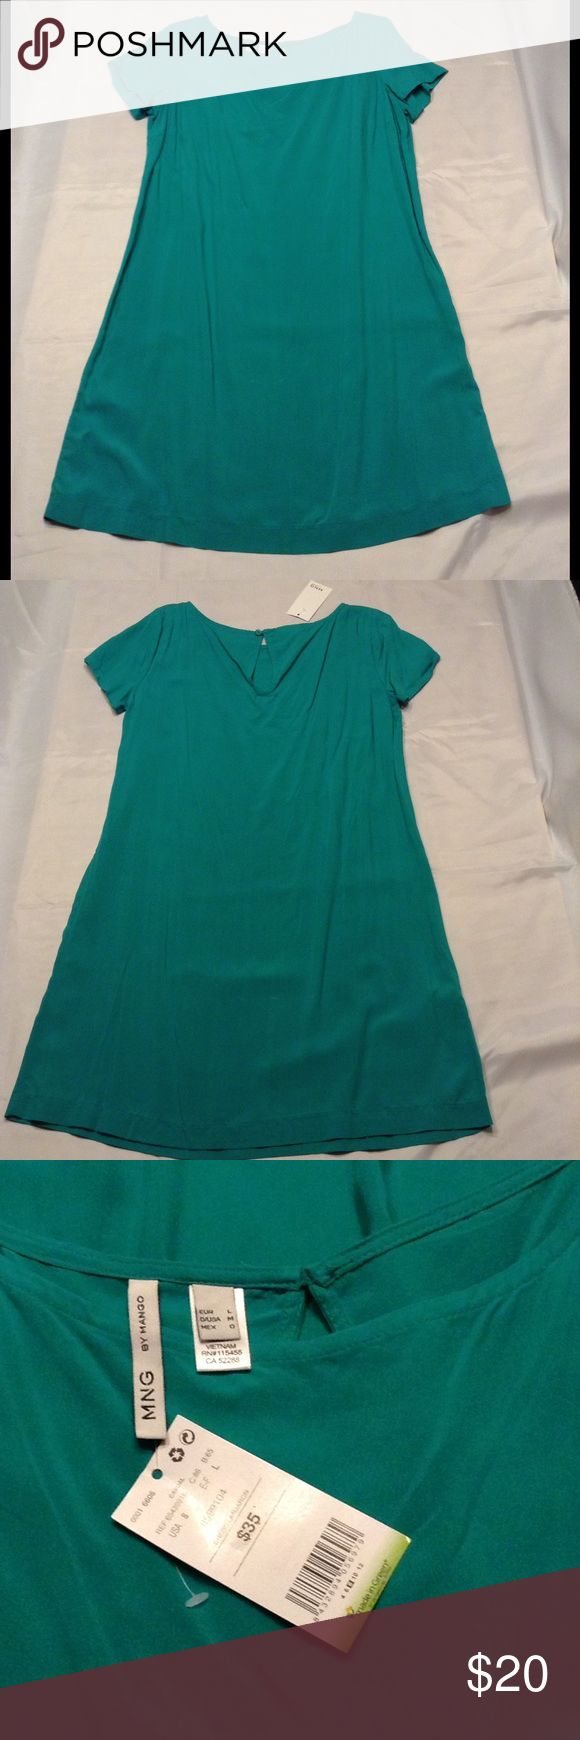 MNG by Mango Green Shift Dress MNG by Mango Green Shift Dress  Green Color Lightweight Material Size M(Label) MNG By Mango Dresses